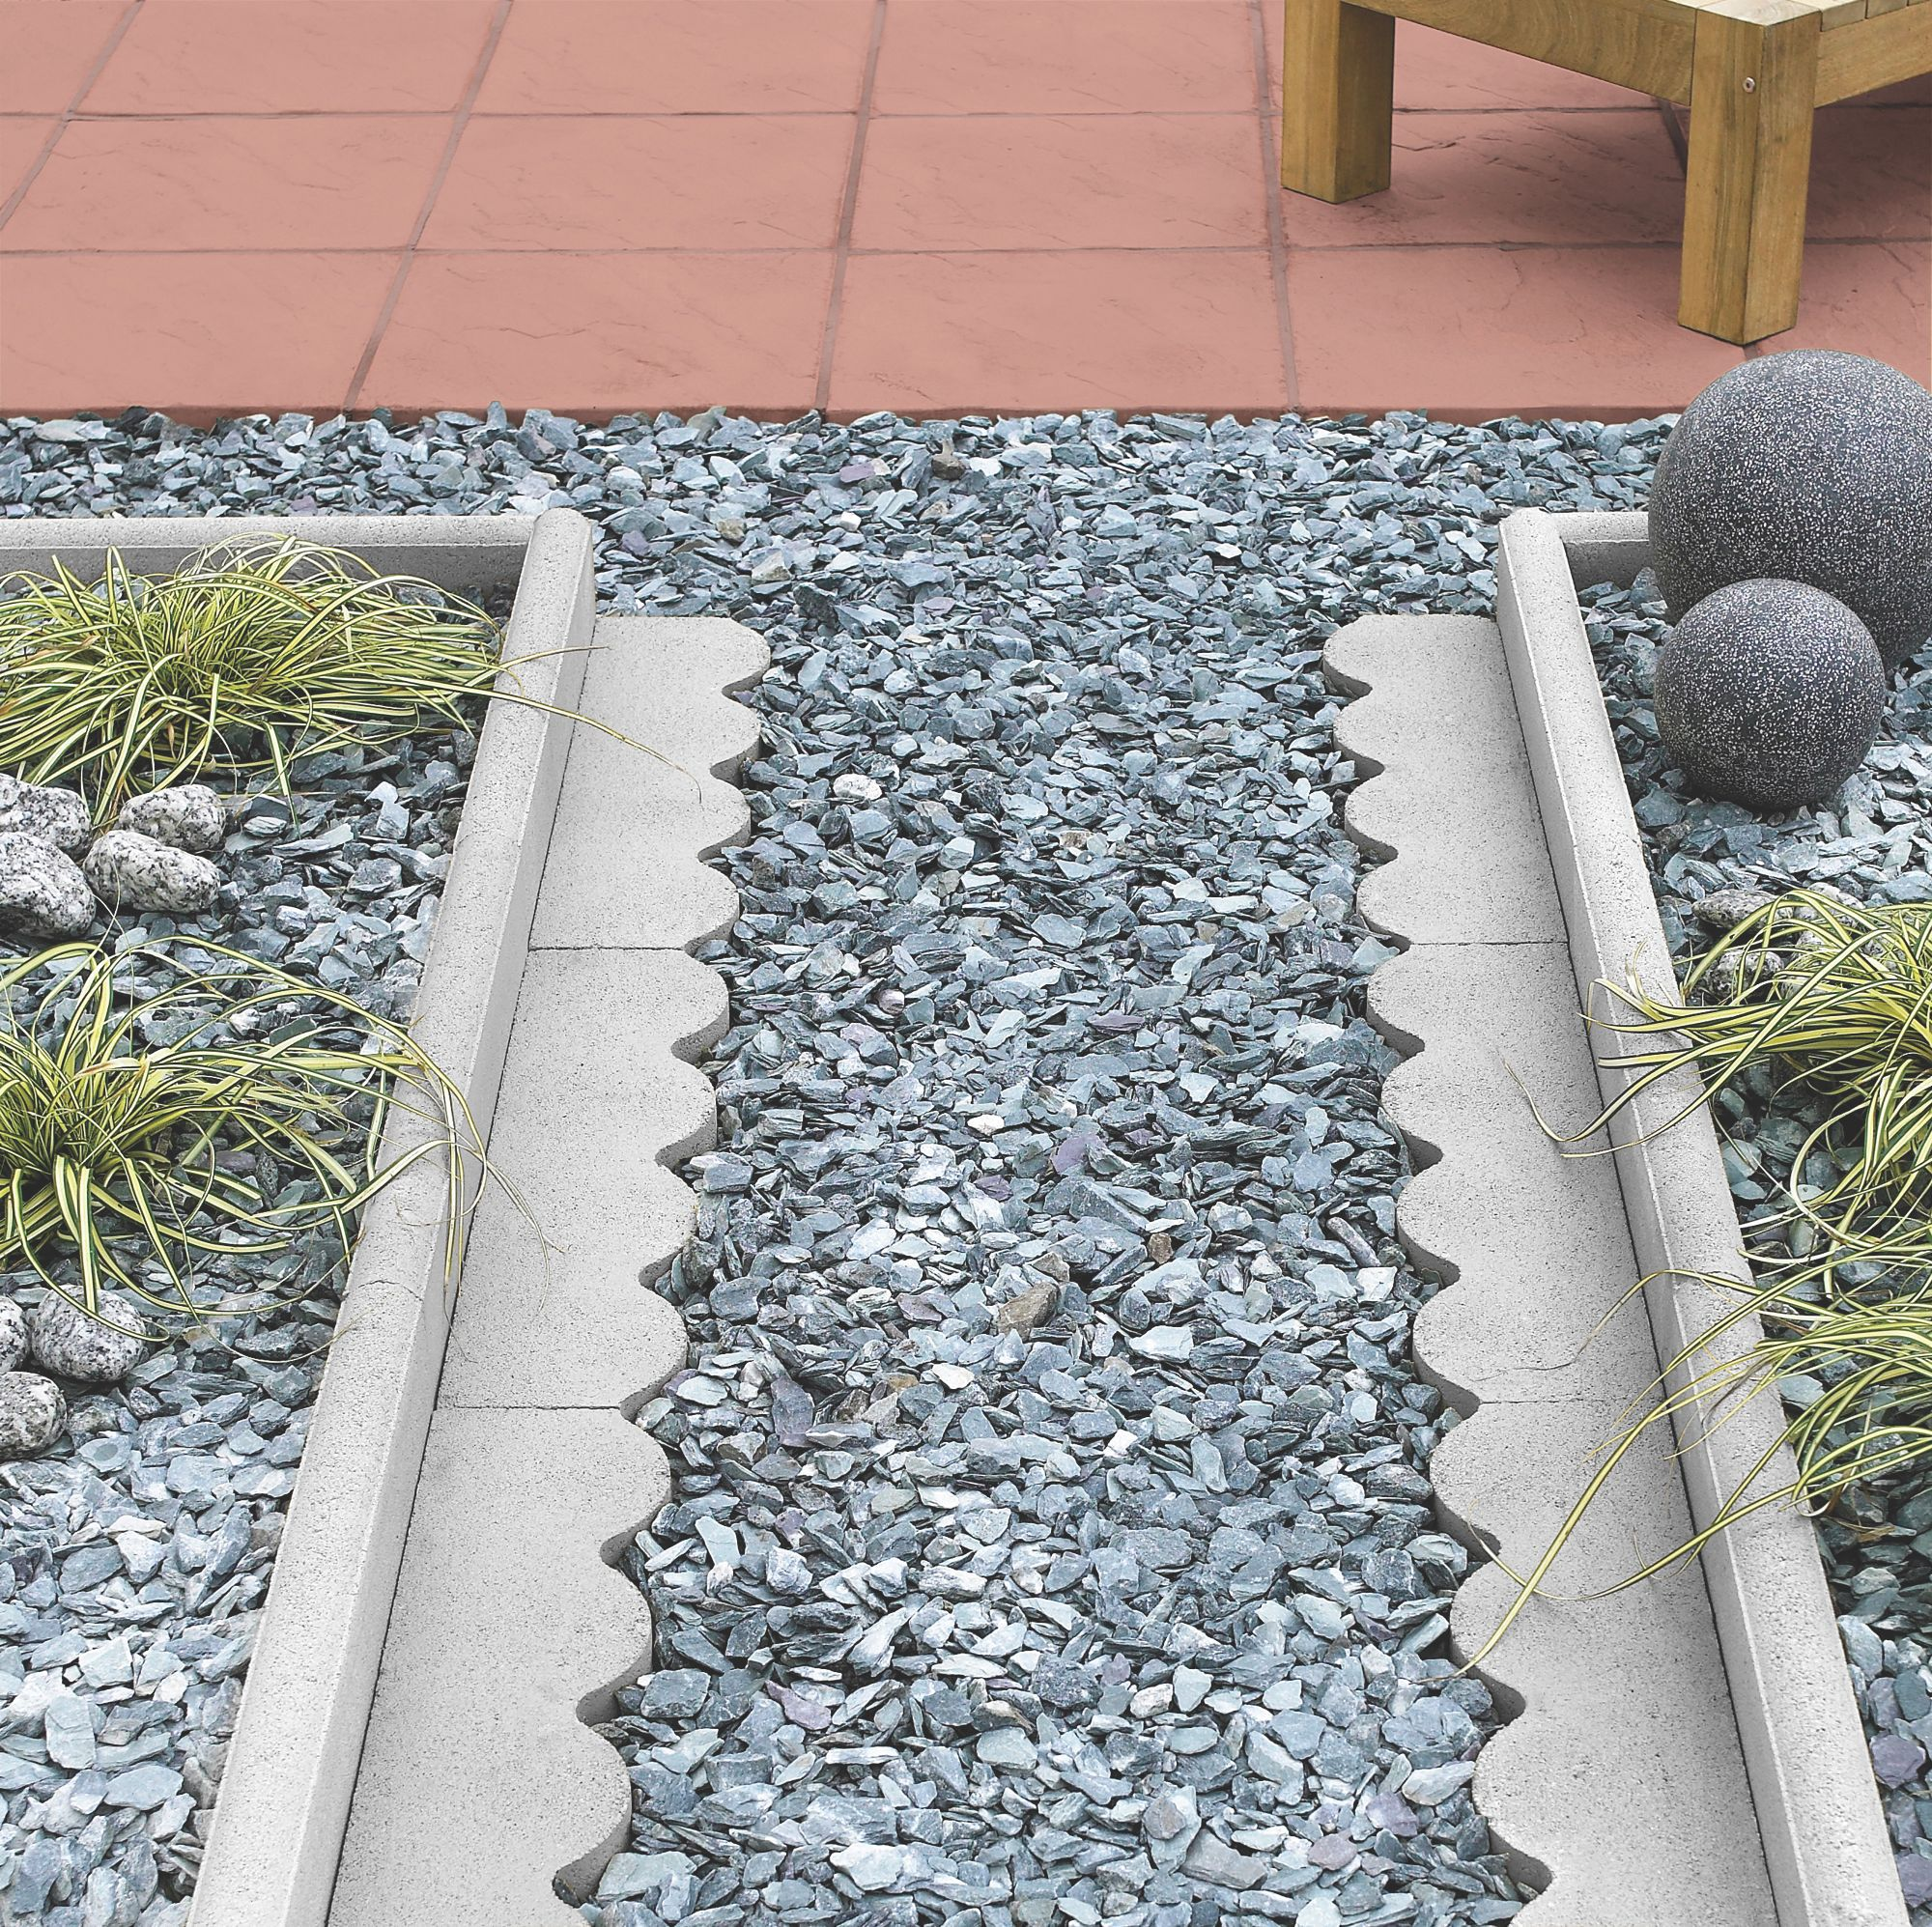 Diy Lawn Edging Ideas: Contemporary Paving Edging Grey, (L)600mm (H)150mm (T)50mm